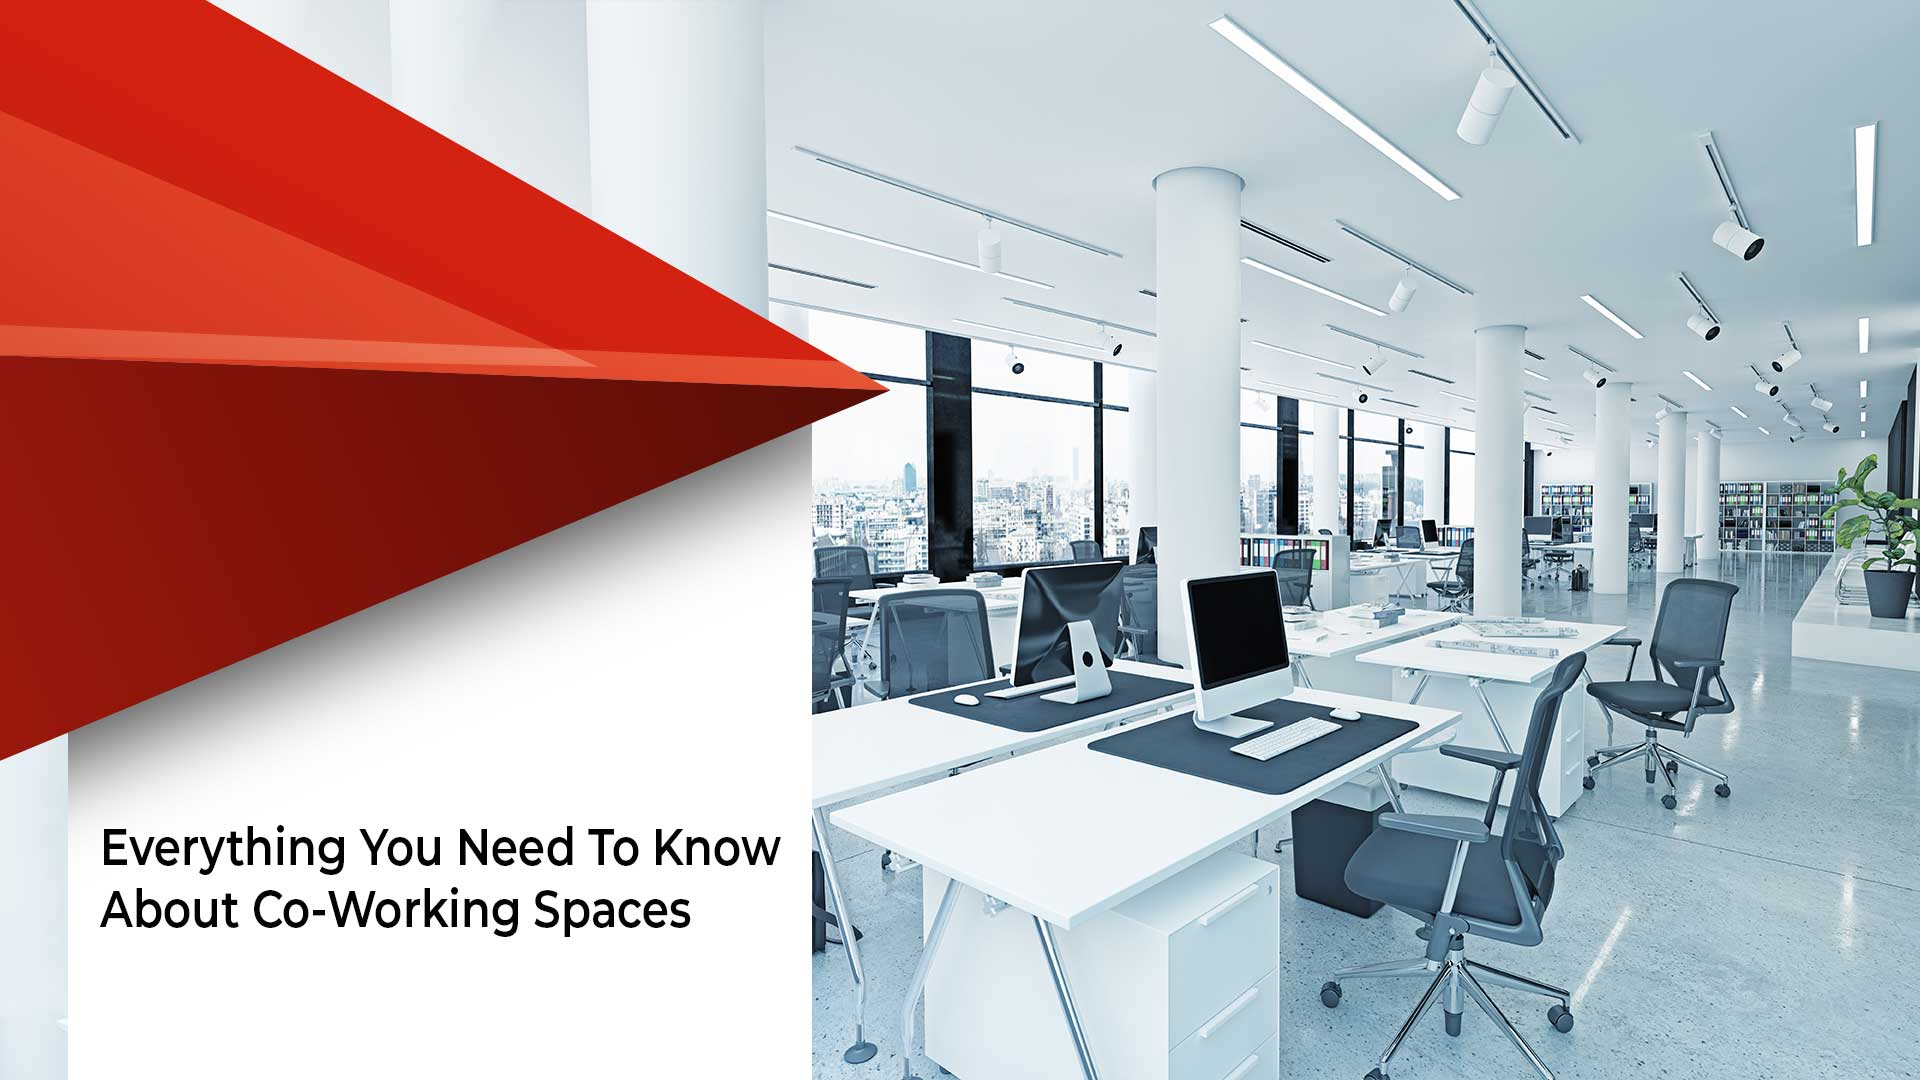 5 Reasons Why Co-working Spaces Are The Best